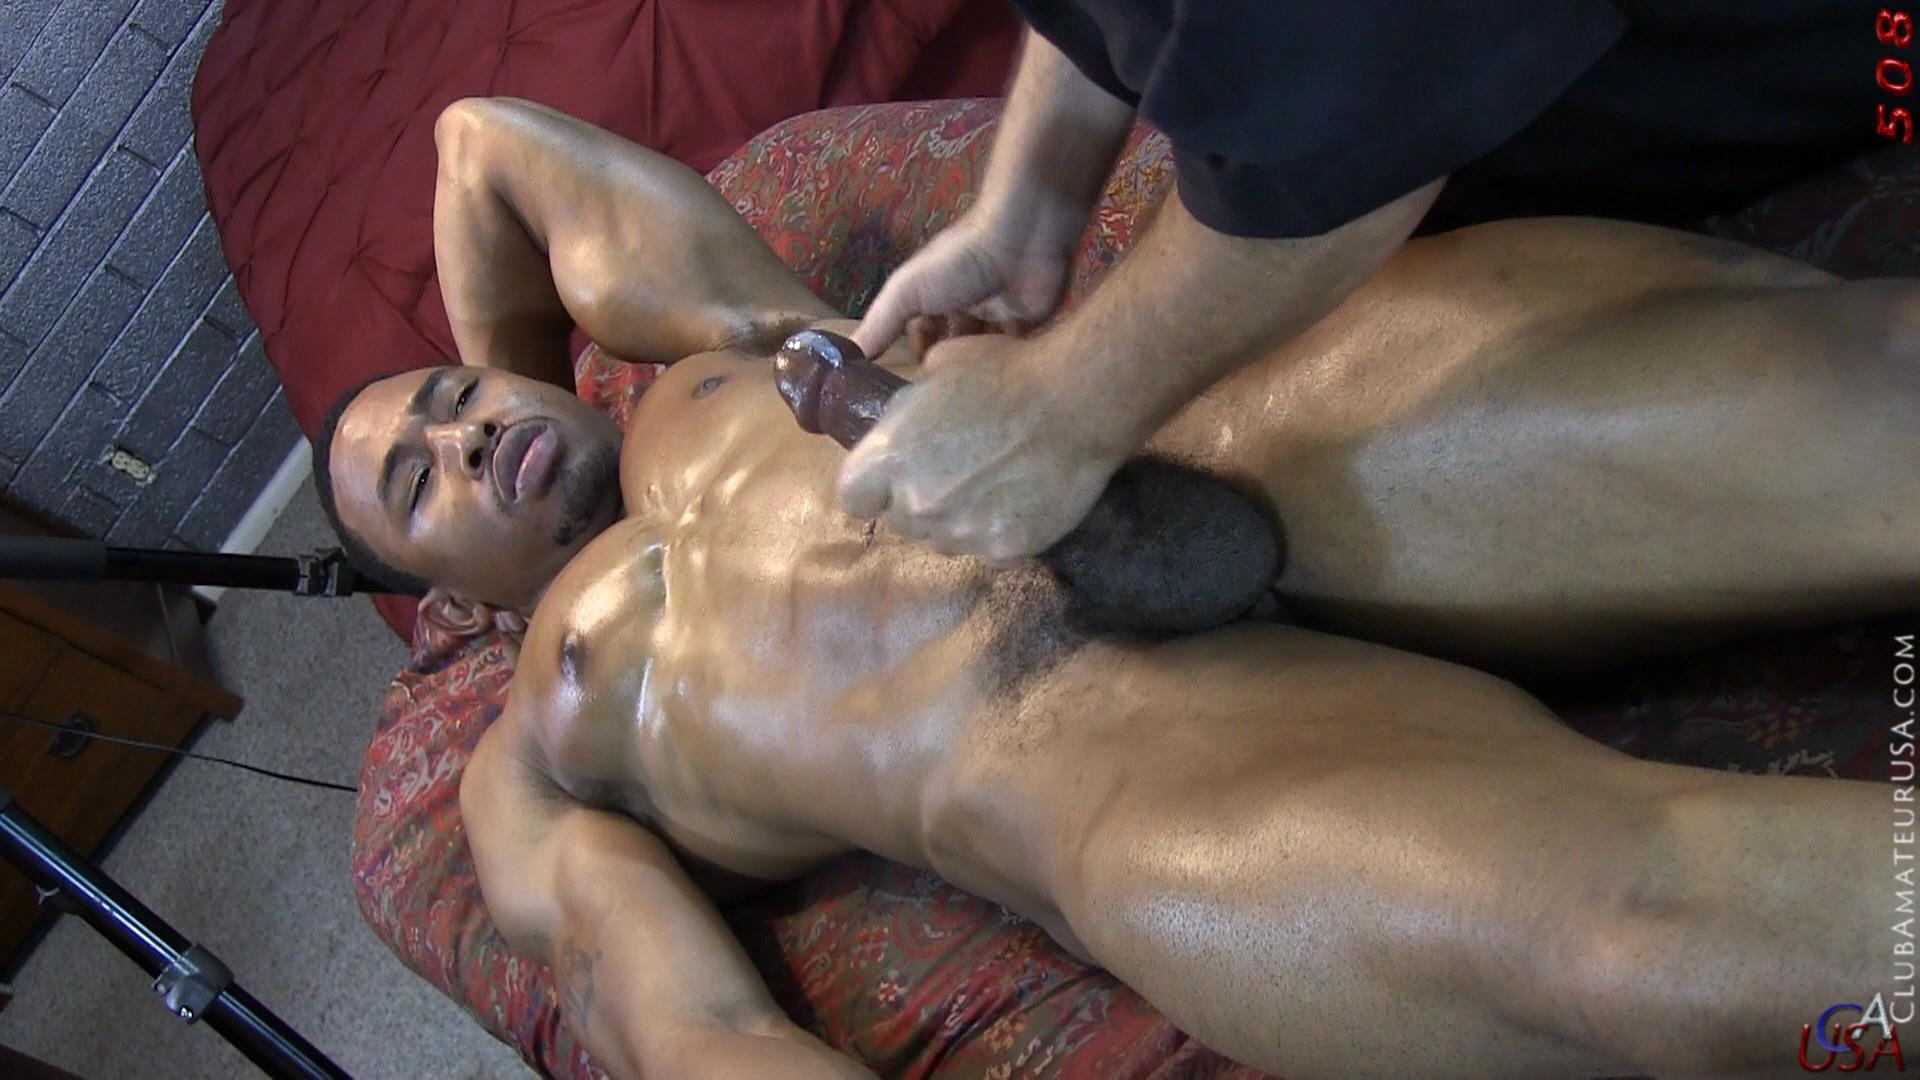 amateur cumshot gay massage video